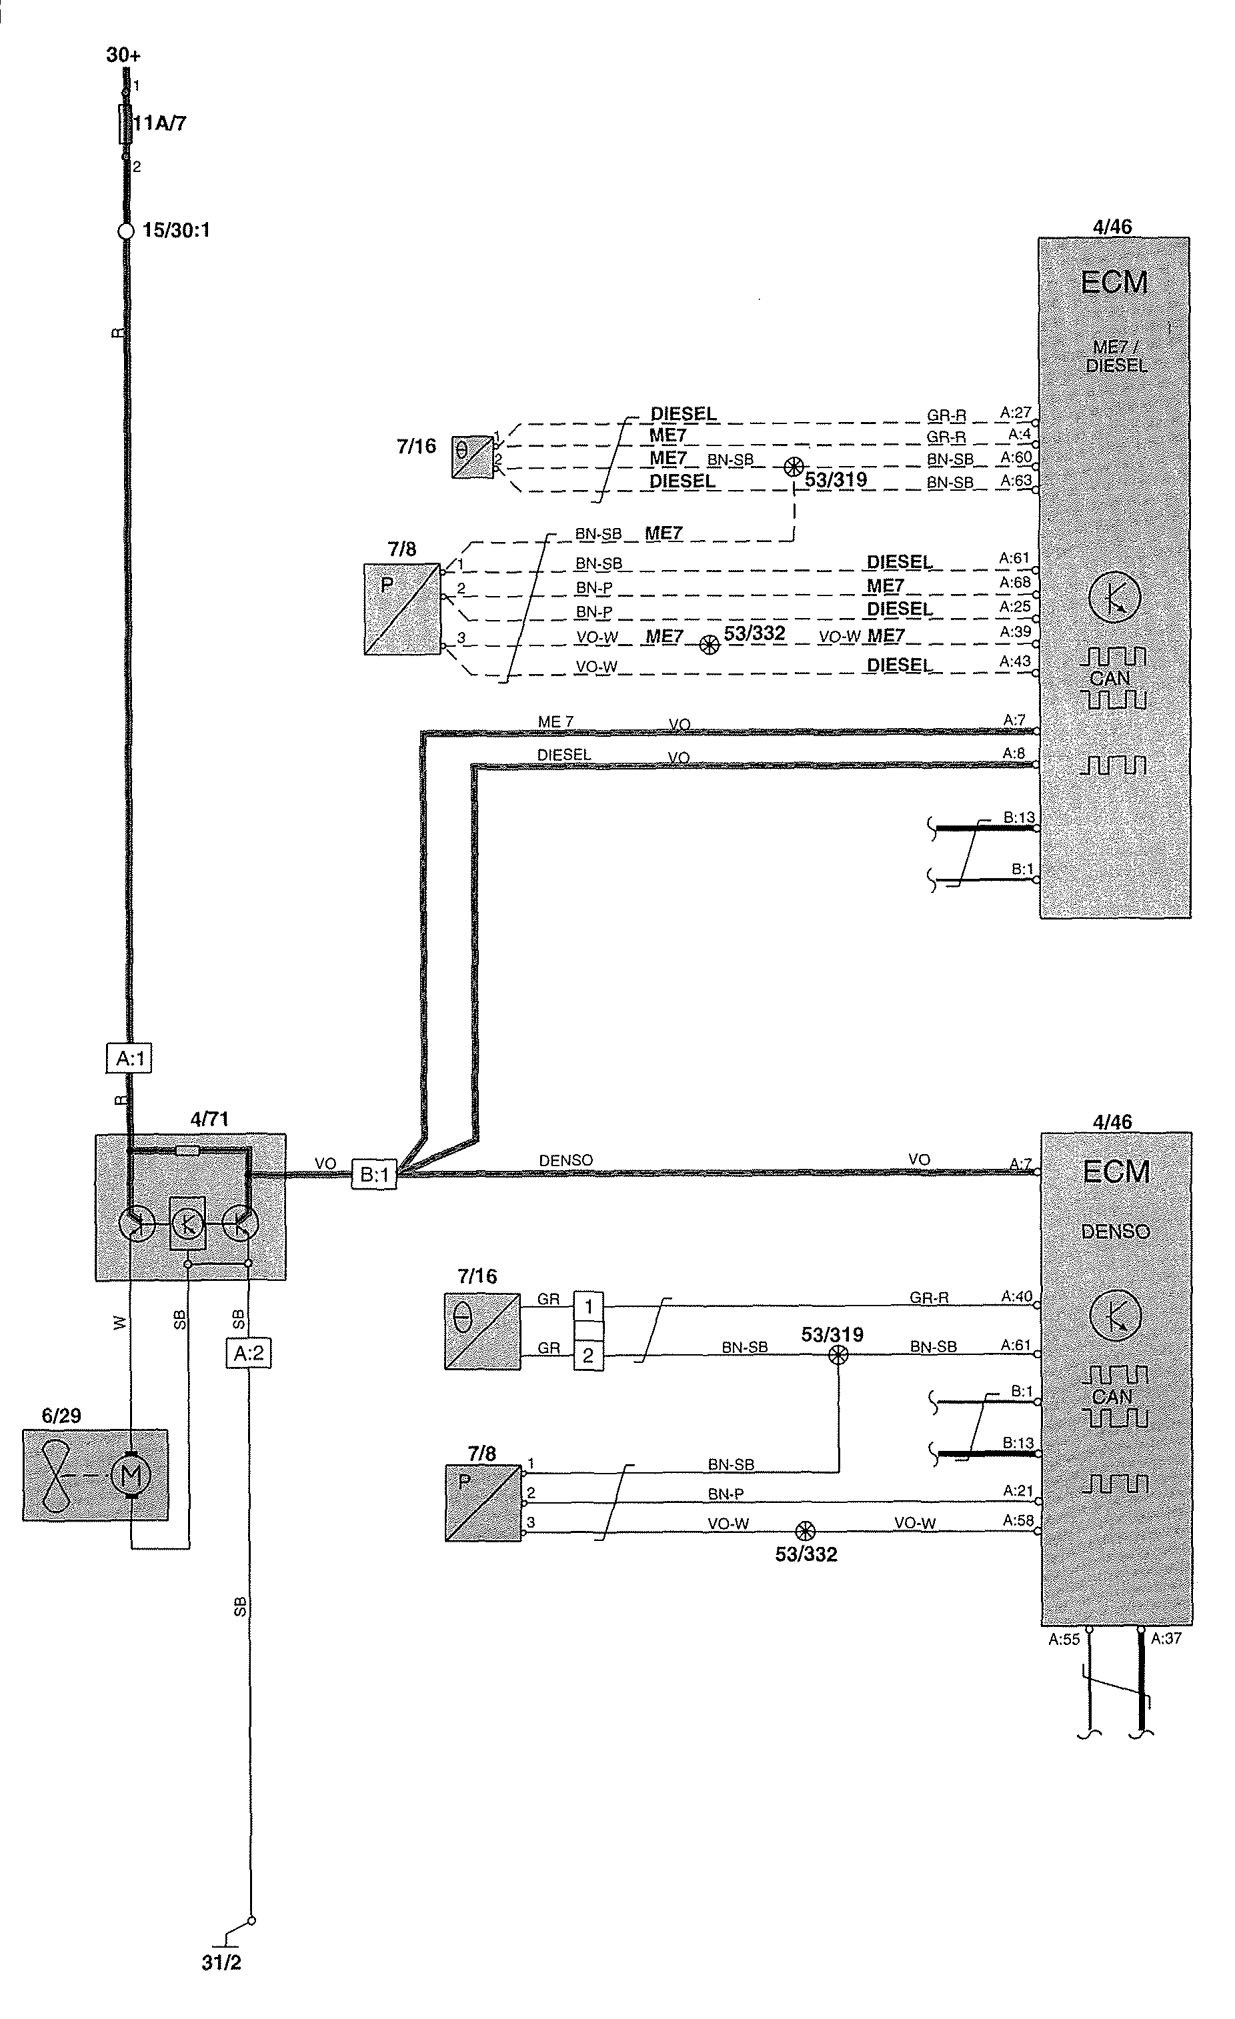 2008 Volvo Xc90 Radiator Fan Wiring Diagram Electrical Diagrams Wire 2004 Schematic Saturn Vue